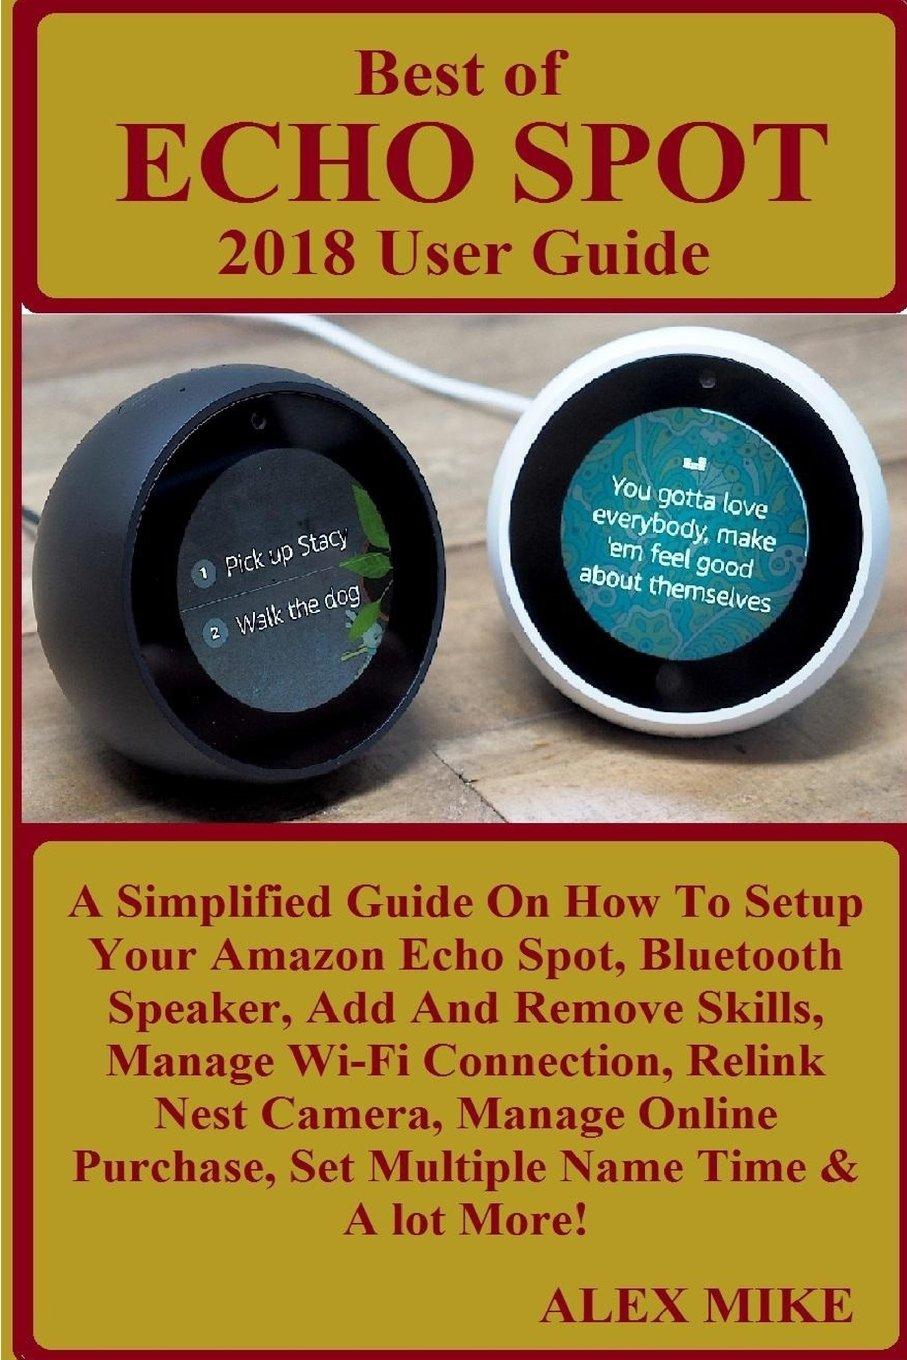 BEST OF ECHO SPOT 2018 User Guide: A Simplified Guide On How To Setup Your Amazon Echo Spot, Bluetooth Speaker, Add And Remove Skills, Manage Wi-Fi ... Set Multiple Name Time & A lot More! pdf